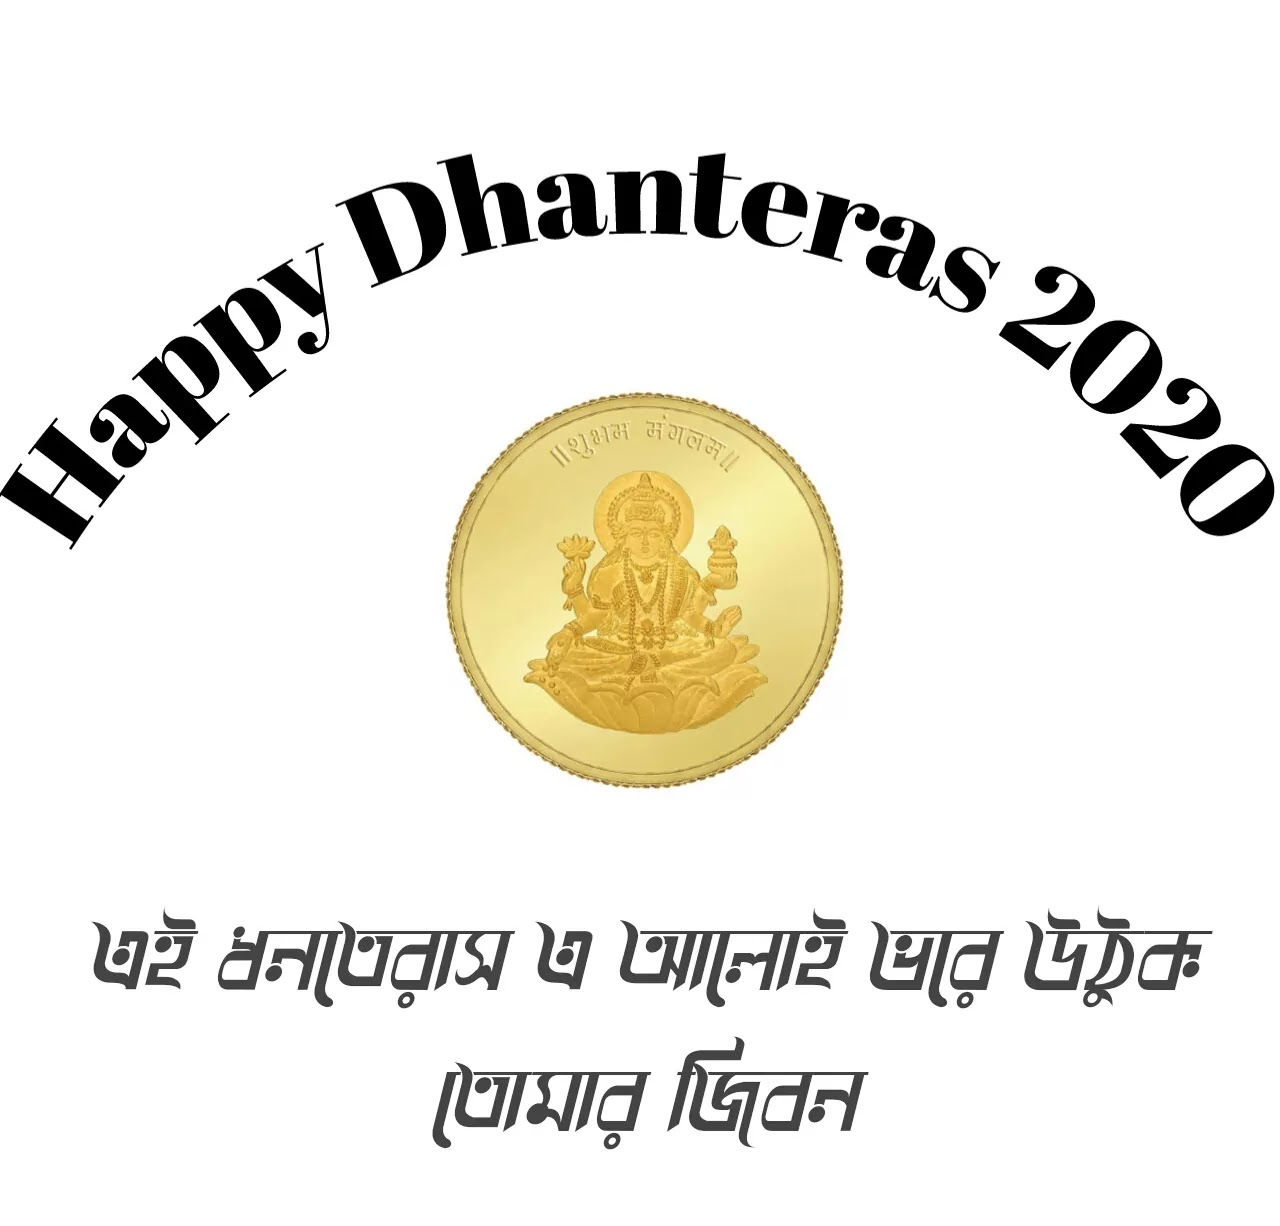 Dhanteras wishes bengali